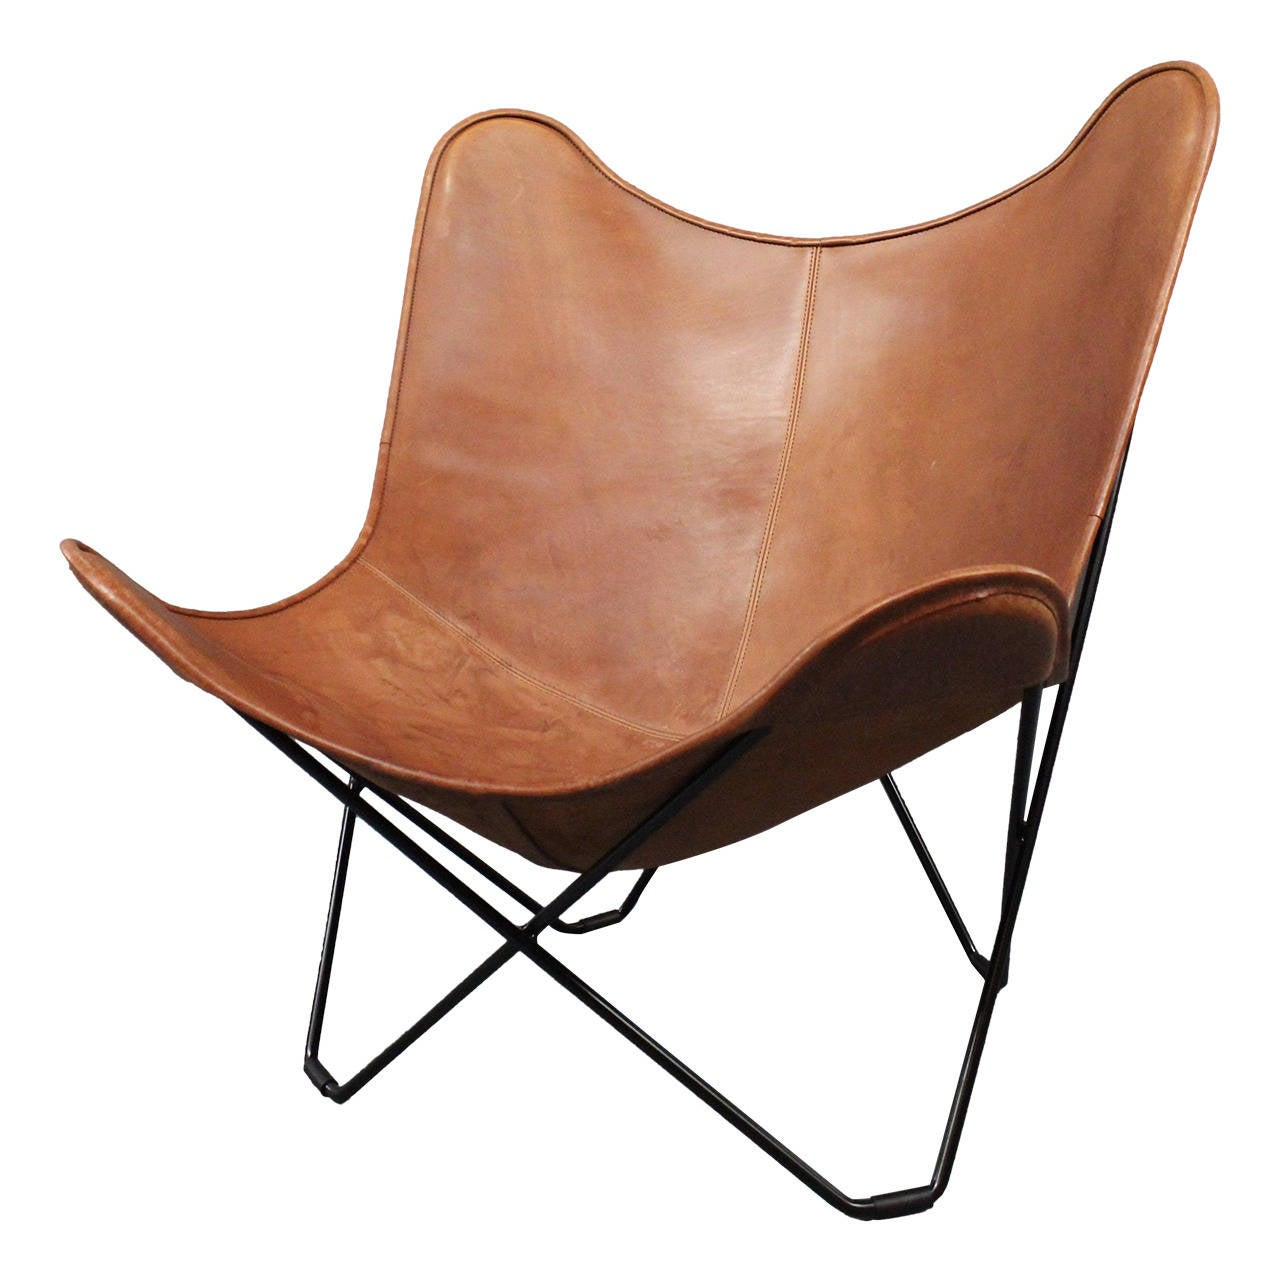 Butterfly chair original - Leather Butterfly Chair Designed By Jorge Ferrari Hardoy